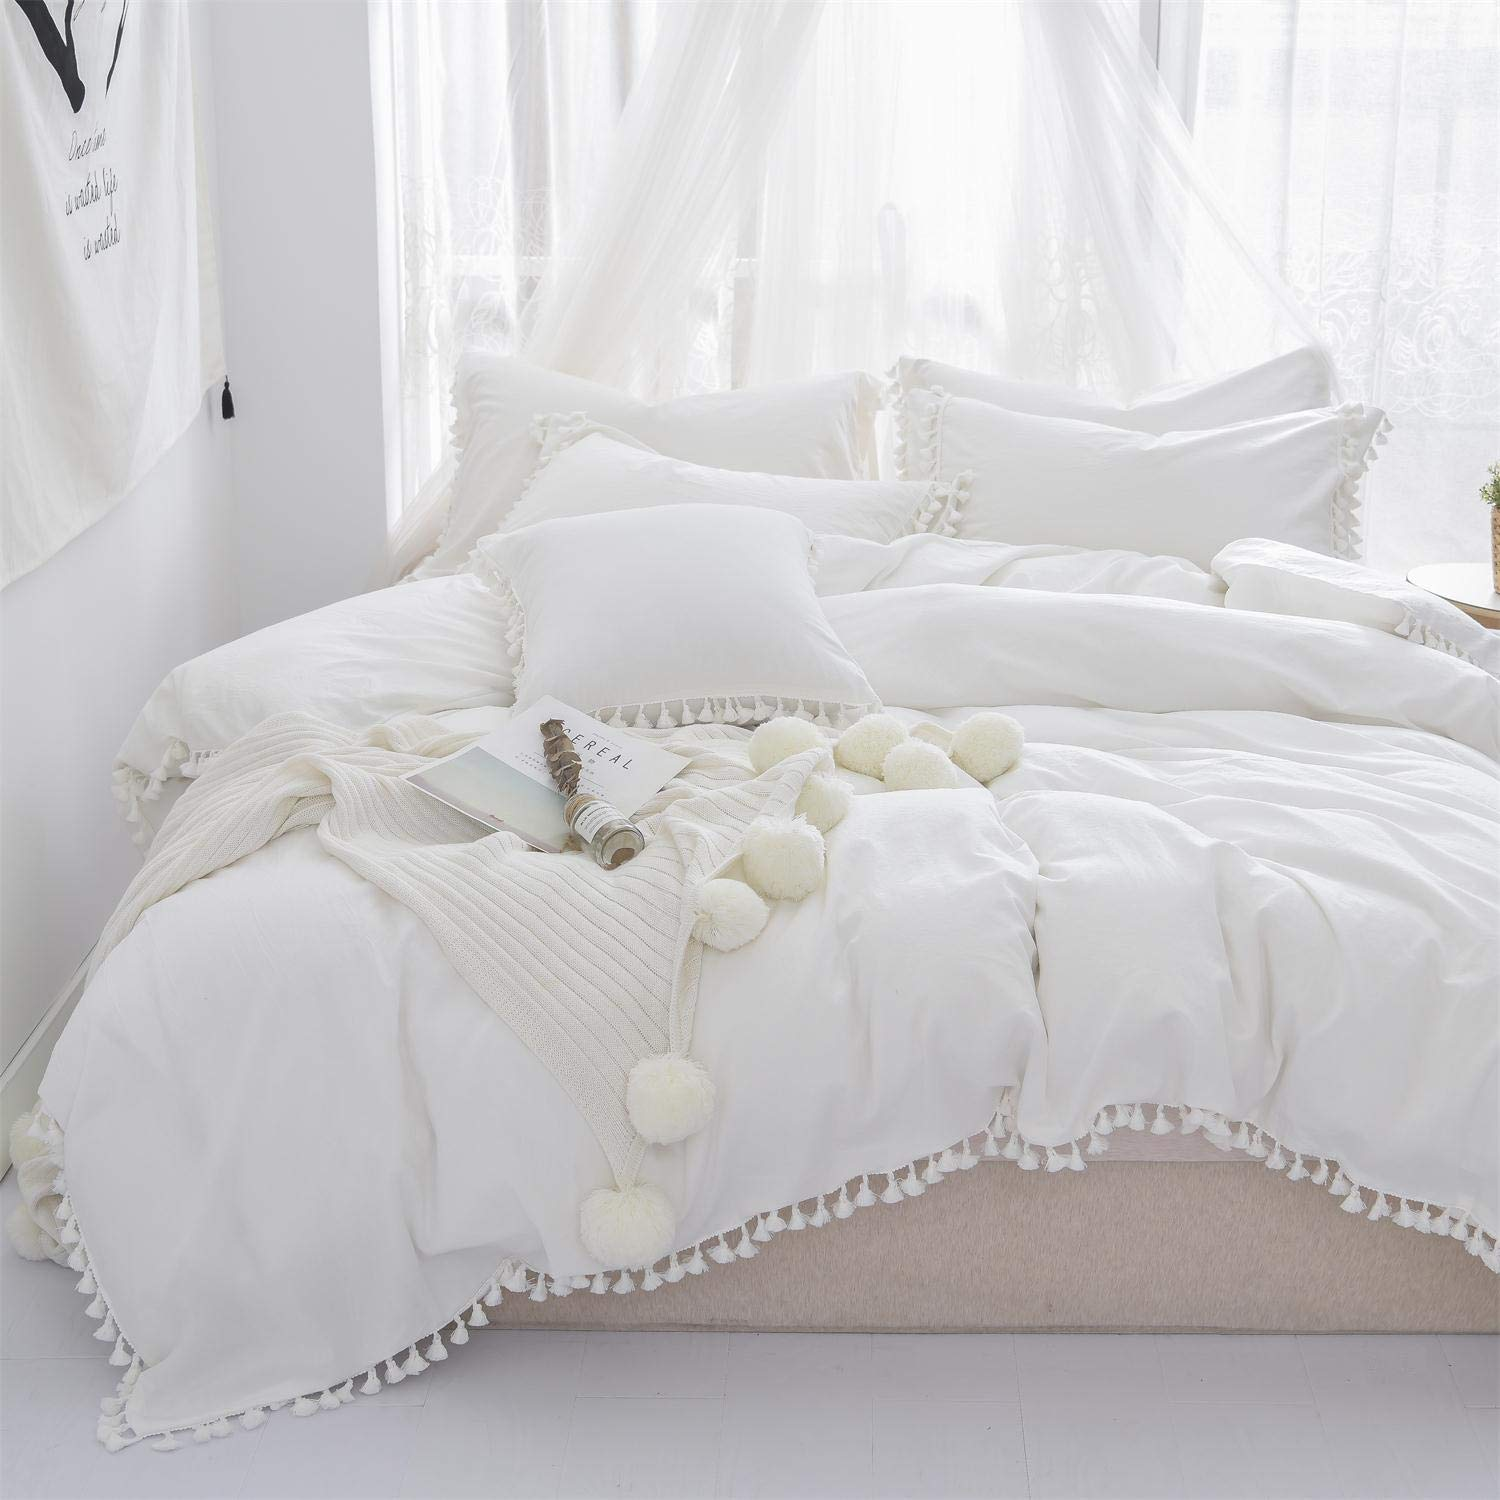 Softta Duvet Cover Full 3 Pcs Bohemian Duvet Covers Tassel and Ruffle White Girls Bedding 100% Washed Cotton with Zipper Close & Corner Ties by Softta